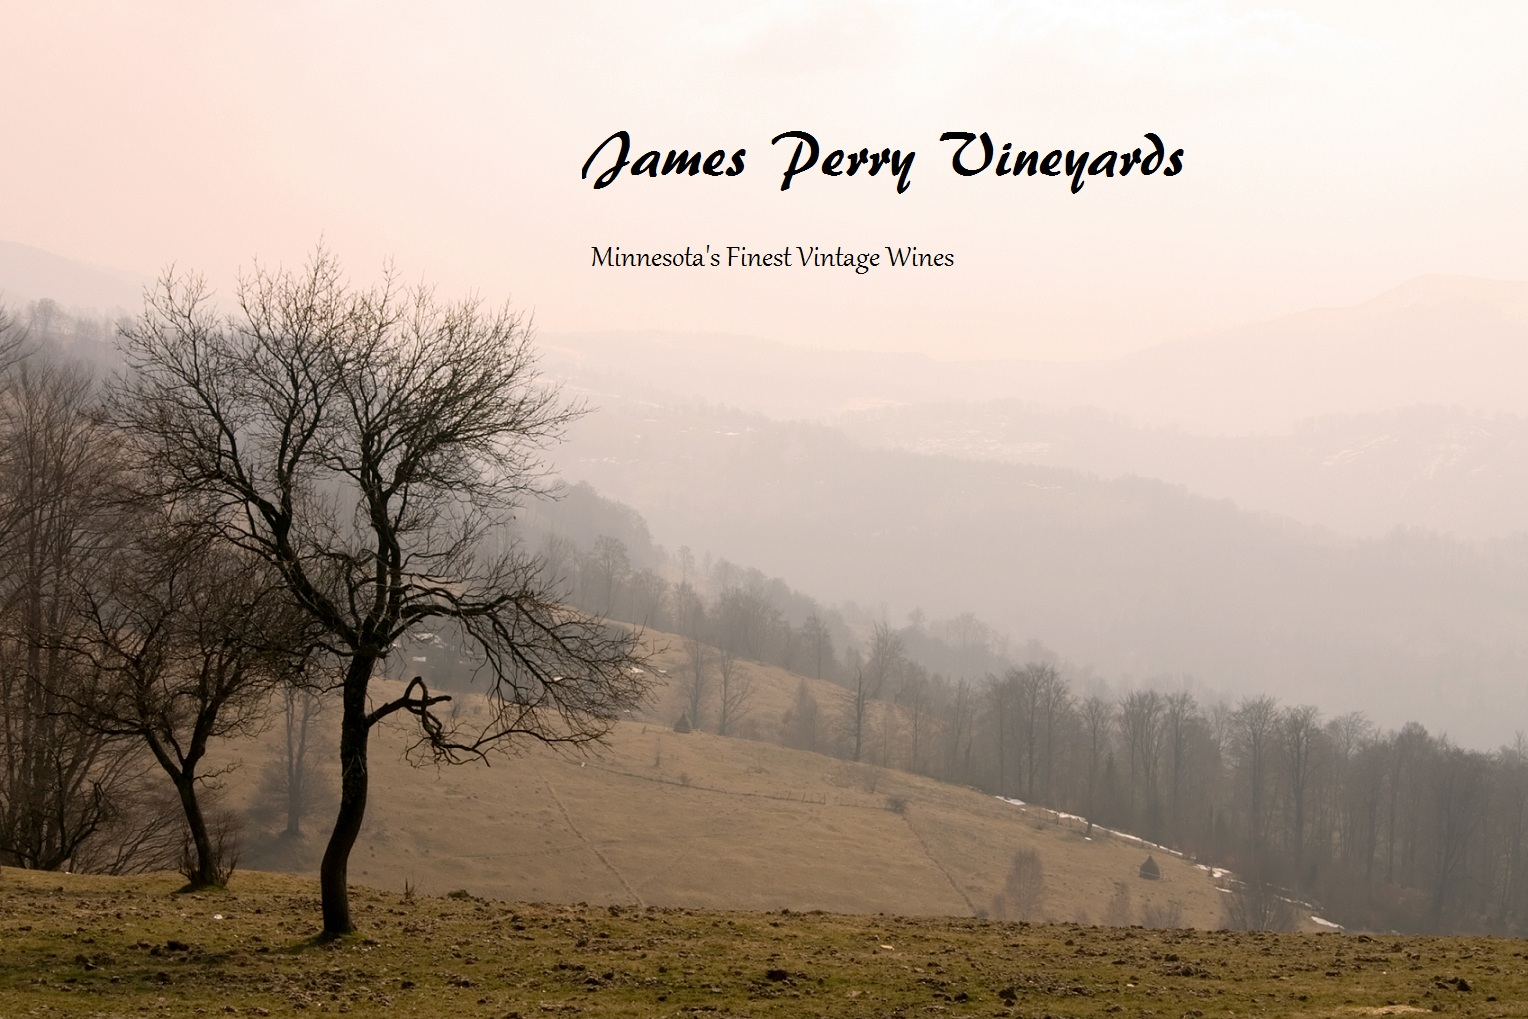 James Perry Vineyards